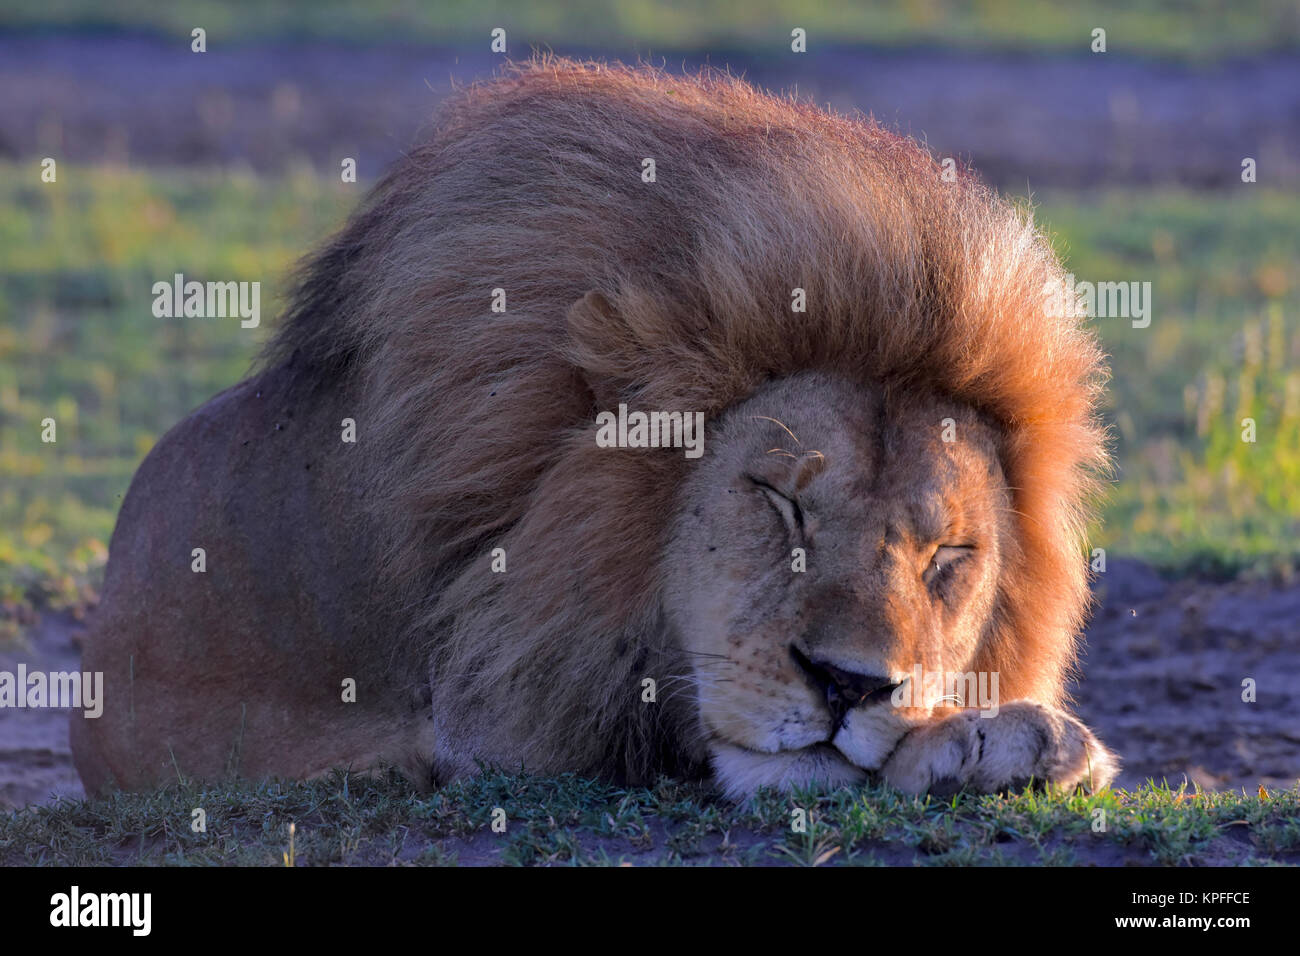 Wildlife sightseeing in one of the prime wildlife destinations on earht -- Serengeti, Tanzania. Sleeping handsome - Stock Image